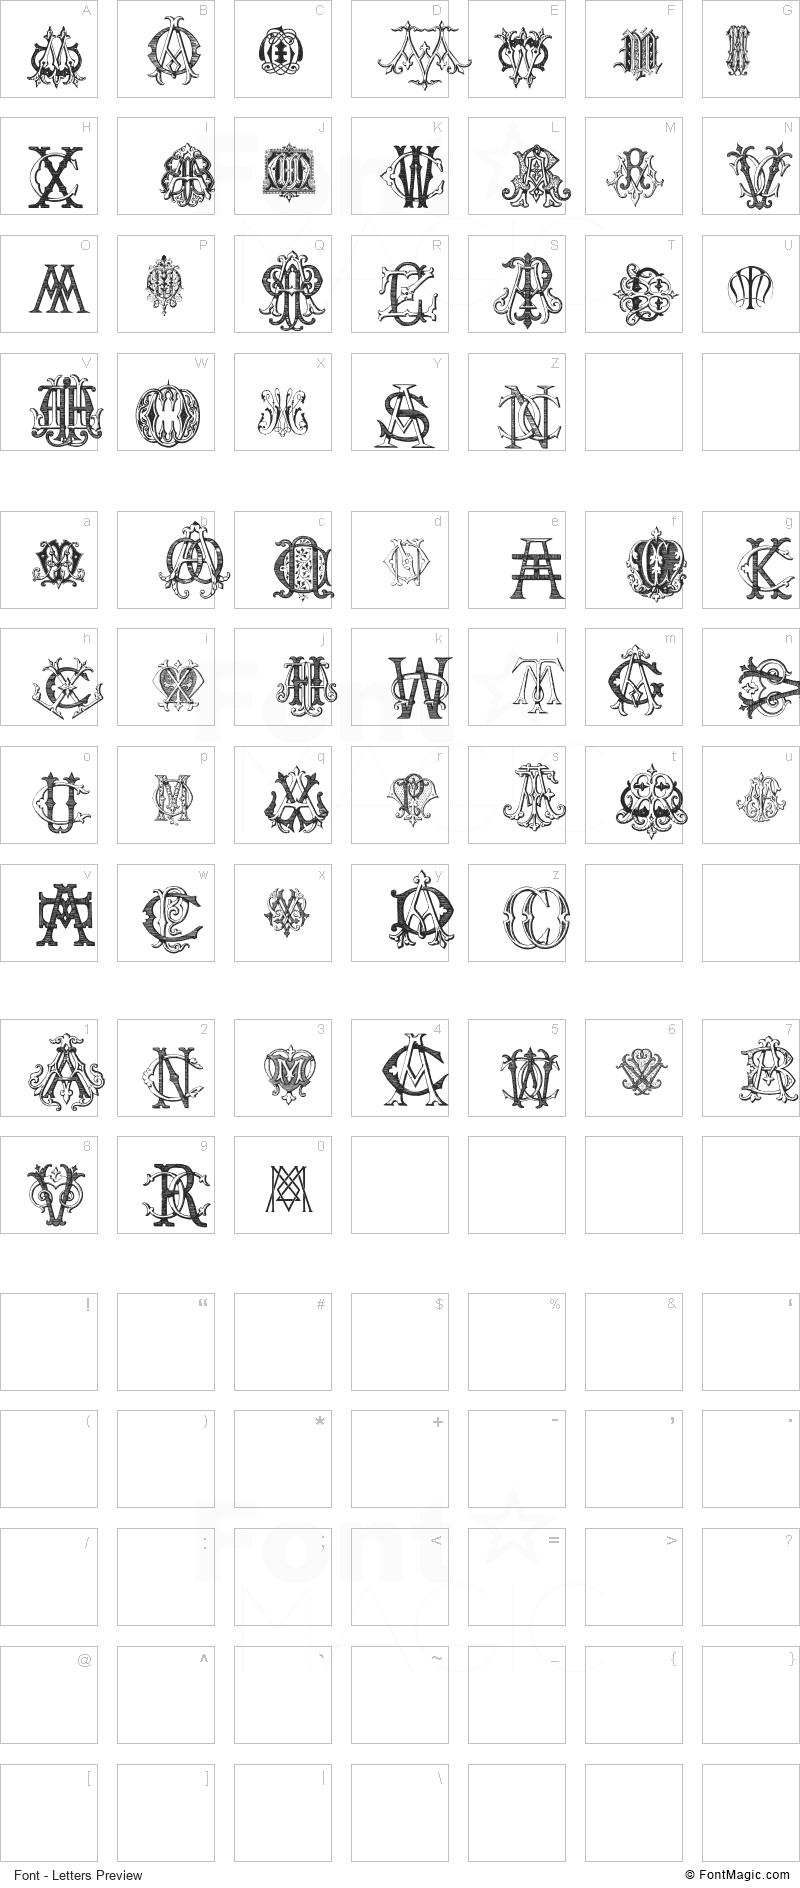 Intellecta Monograms Random Samples Five Font - All Latters Preview Chart